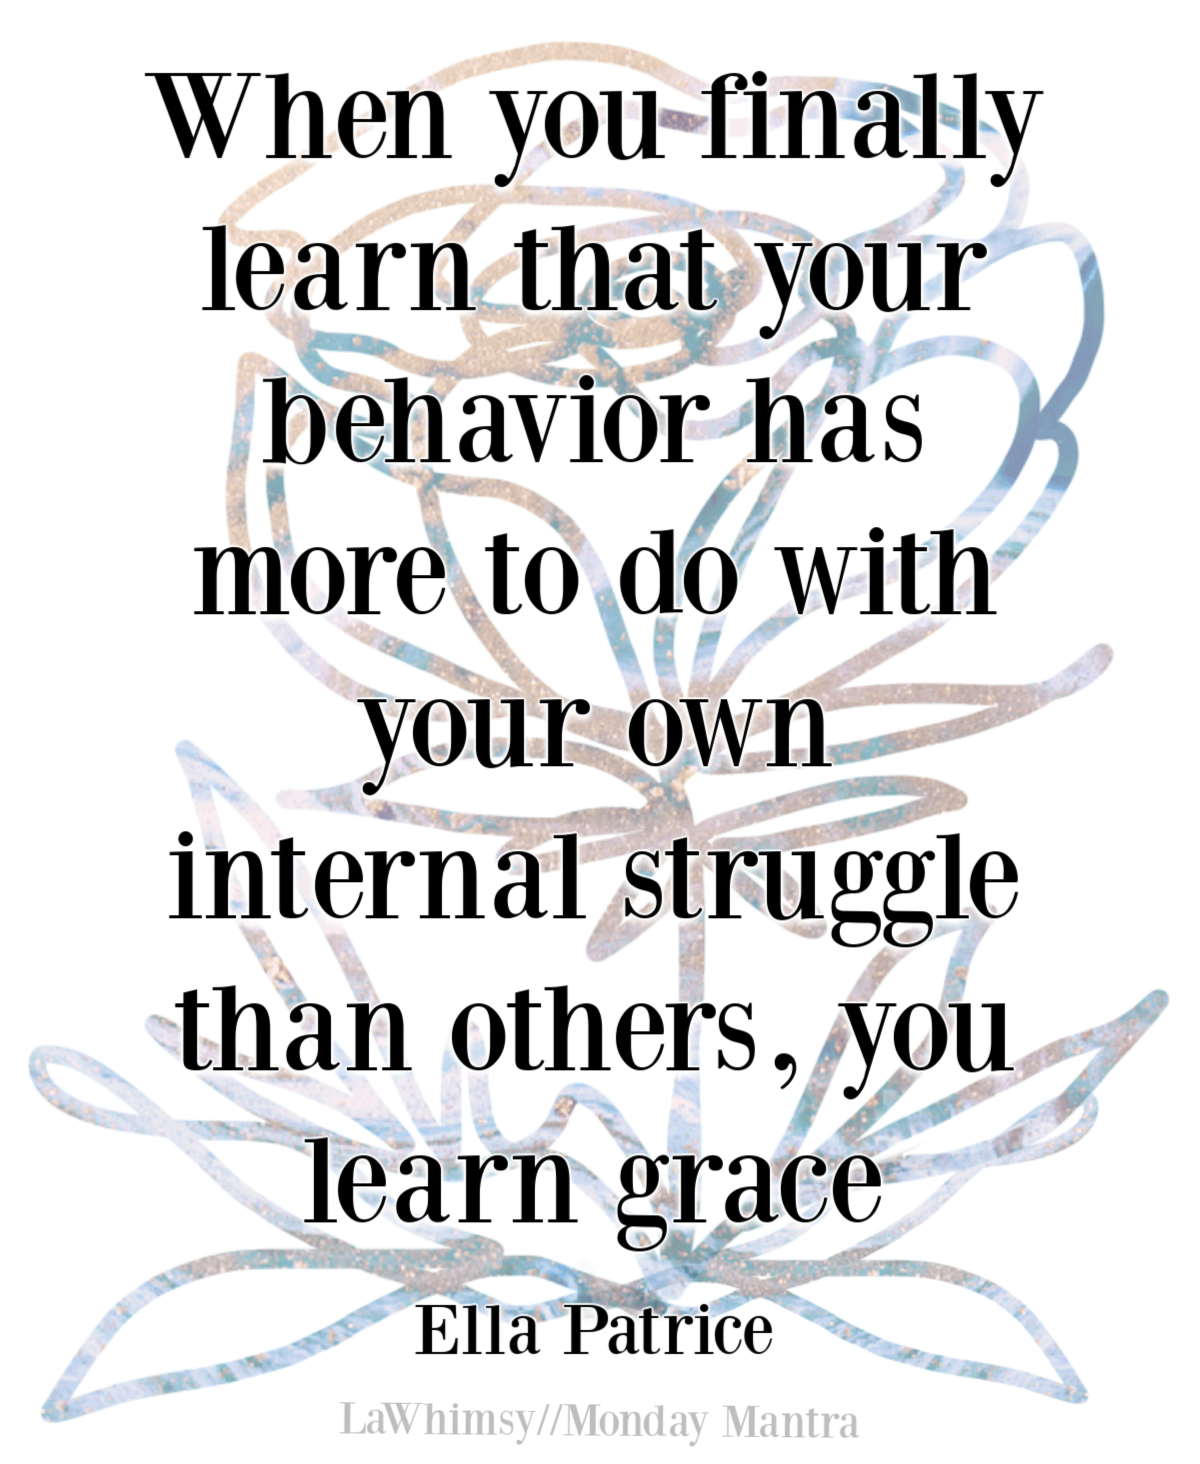 When you finally learn that your behavior has more to do with your own internal struggle than others, you learn grace Ella Patrice quote Monday Mantra 295 via LaWhimsy